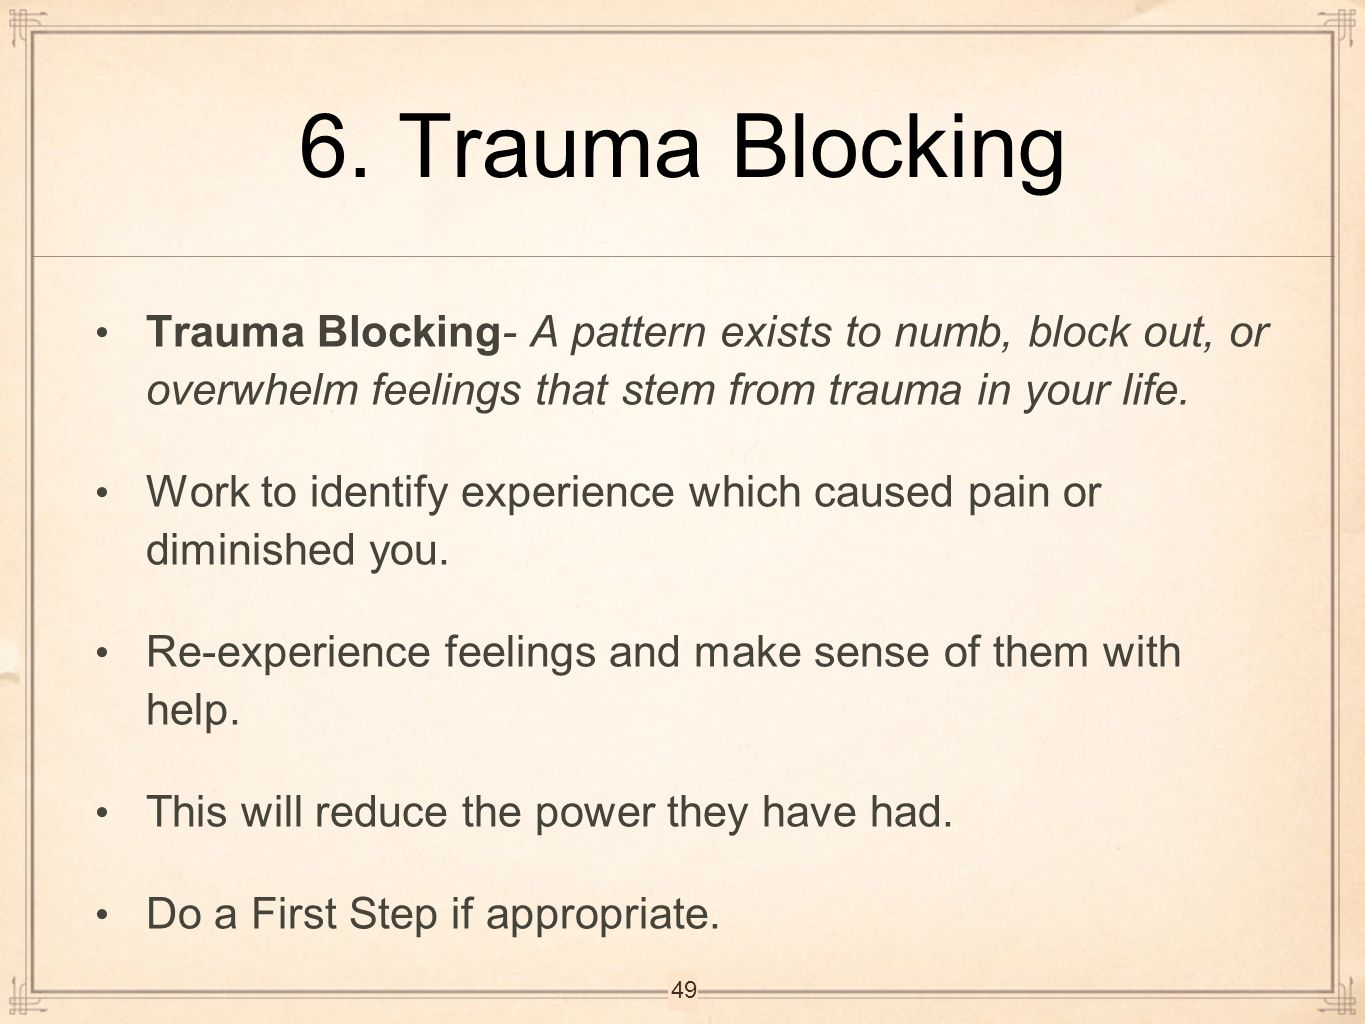 6. Trauma Blocking Trauma Blocking- A pattern exists to numb, block out, or overwhelm feelings that stem from trauma in your life.